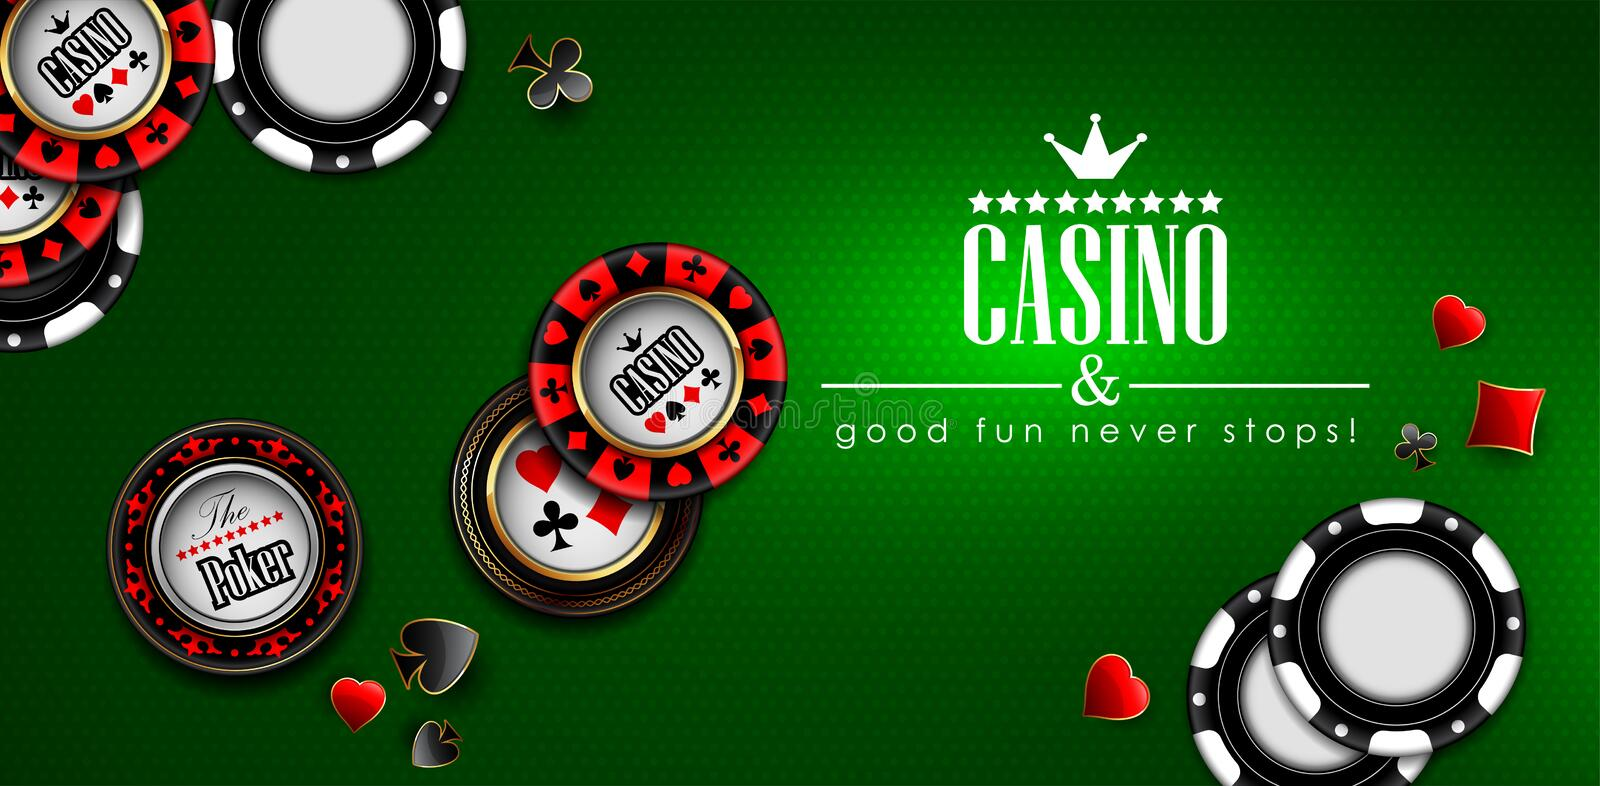 Casino advertising design with a playing chips.  Highly realistic illustration stock illustration